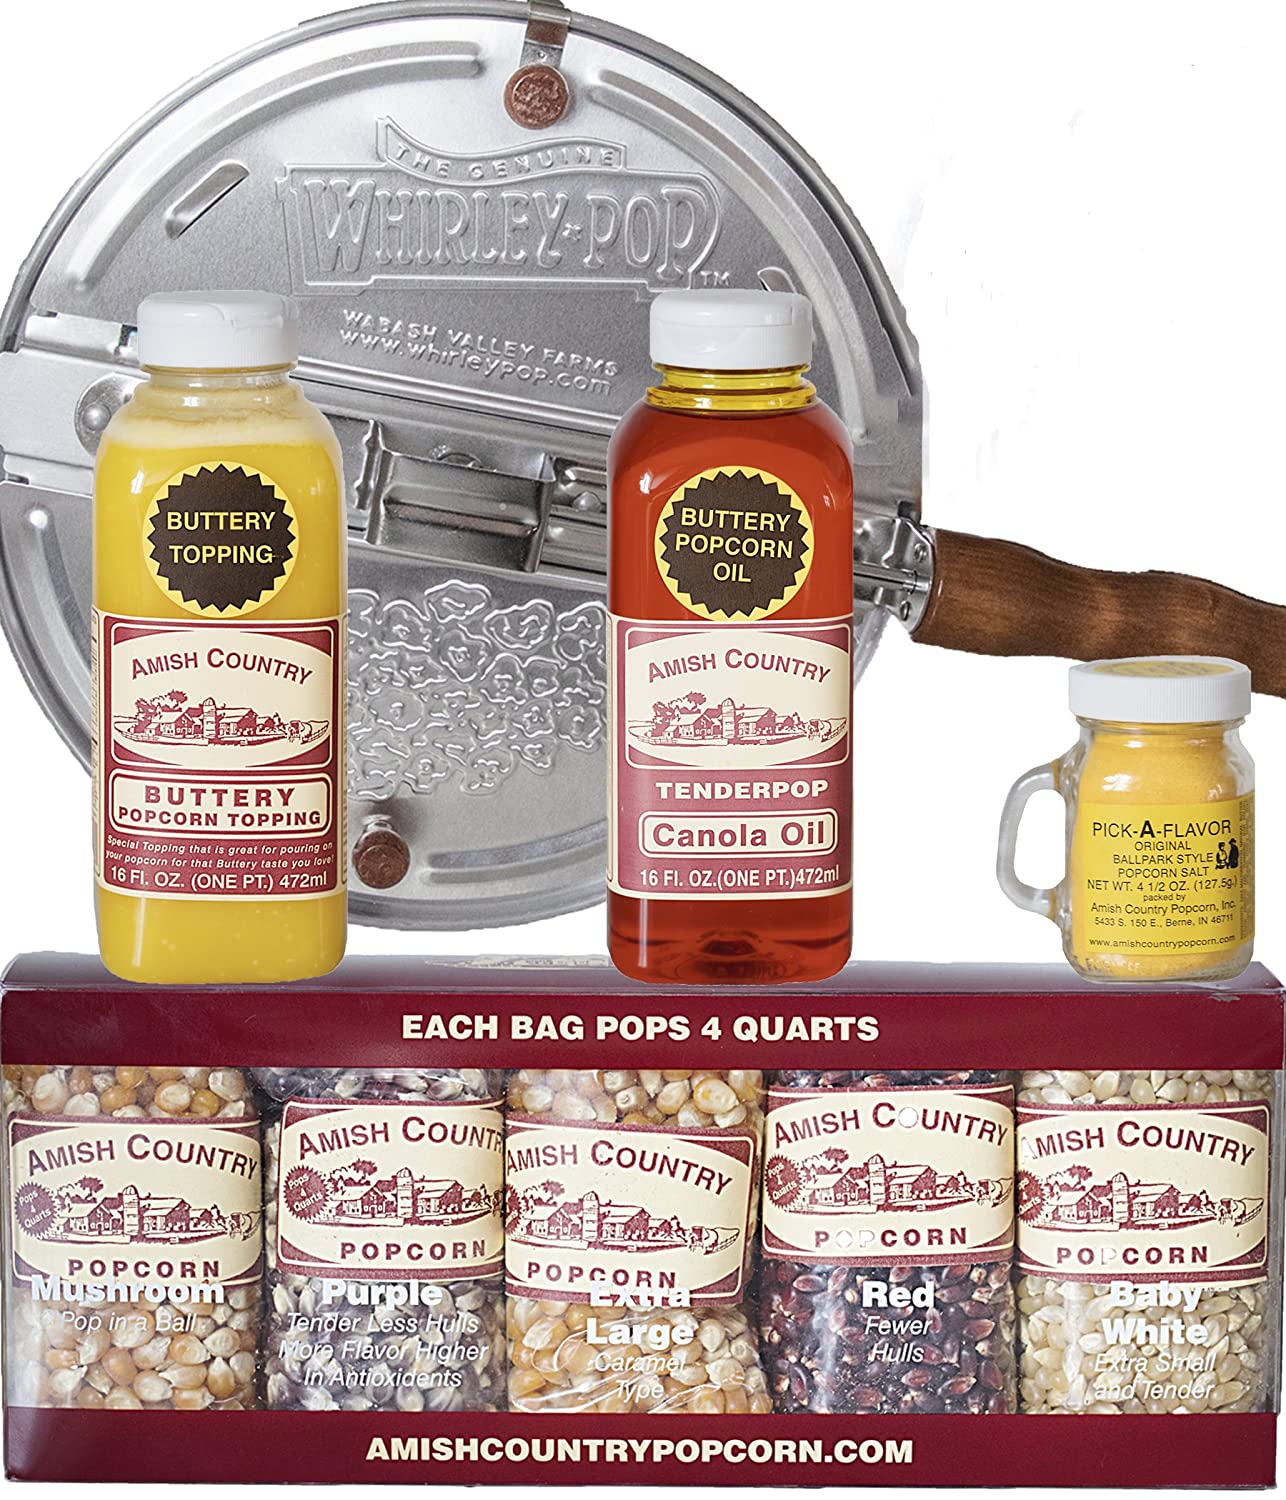 Amish Country Popcorn - 6 Quart Whirley Pop Stovetop Popcorn Gift Set - with Recipe Guide - Old Fashioned, Non GMO, and Gluten Free